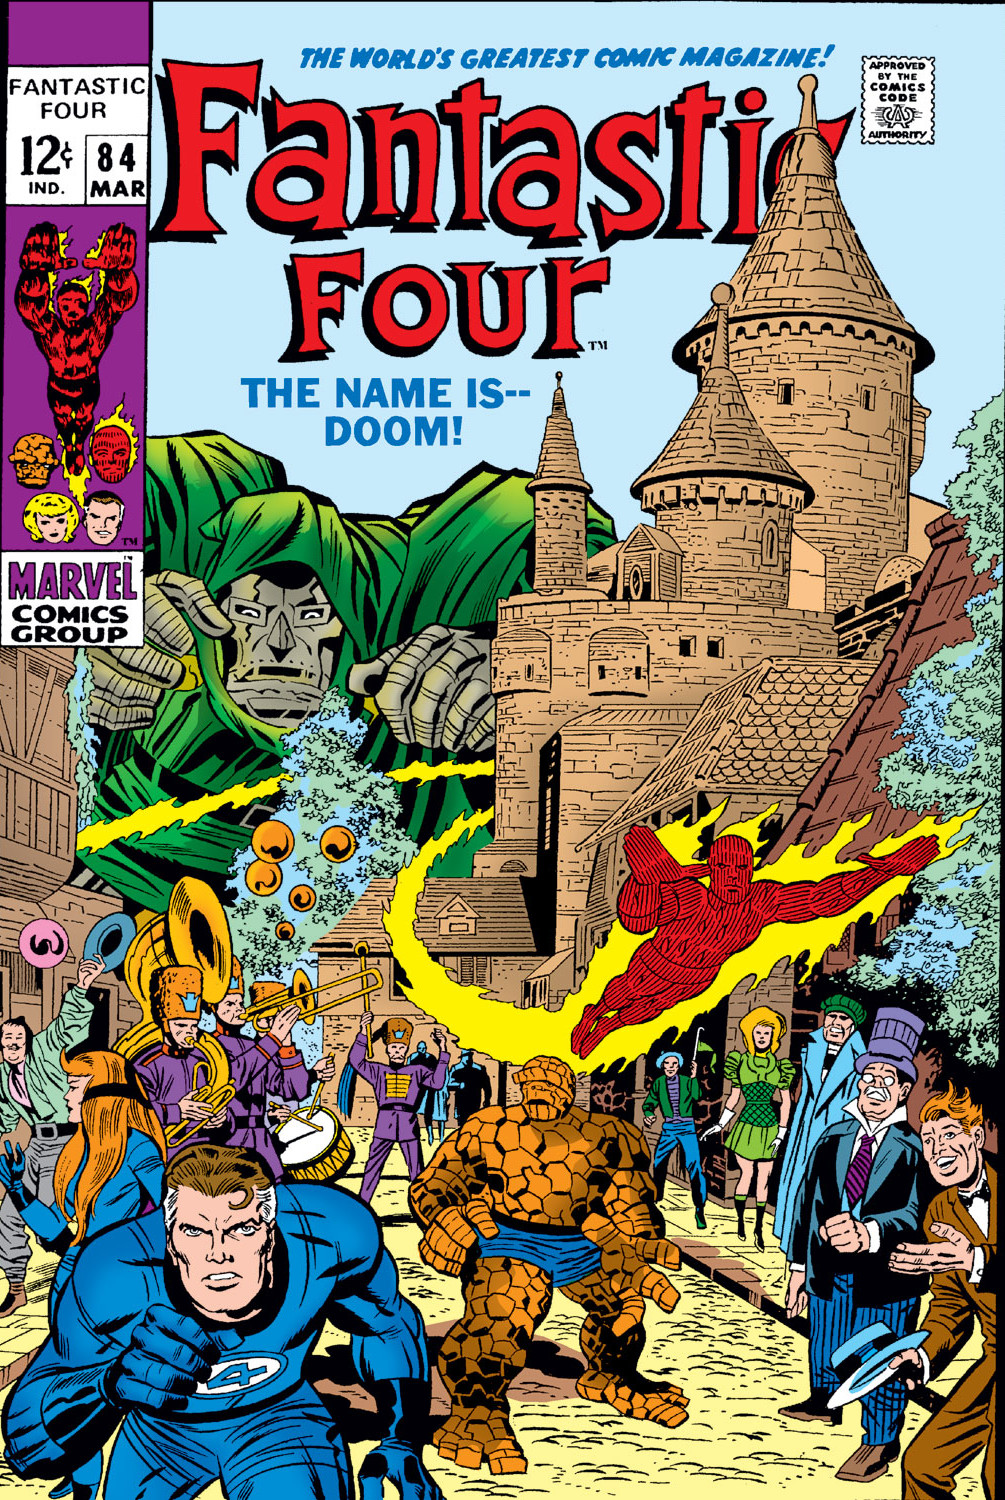 Fantastic Four Vol 1 84 | Marvel Database | FANDOM powered